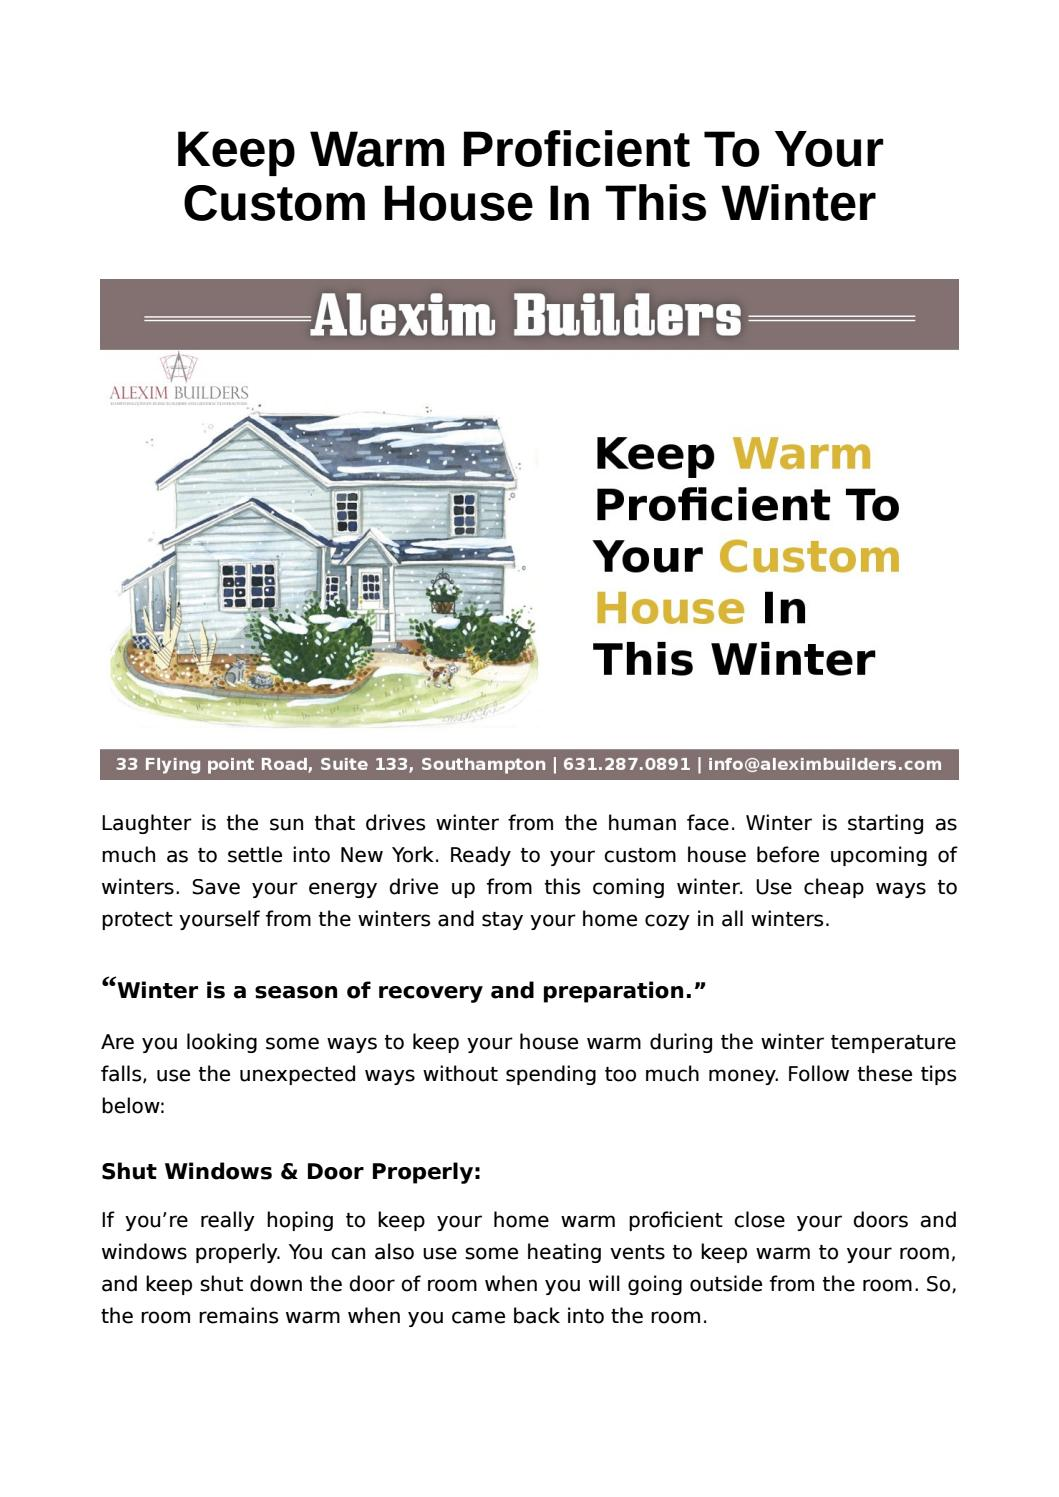 Ways To Keep House Warm In Winters